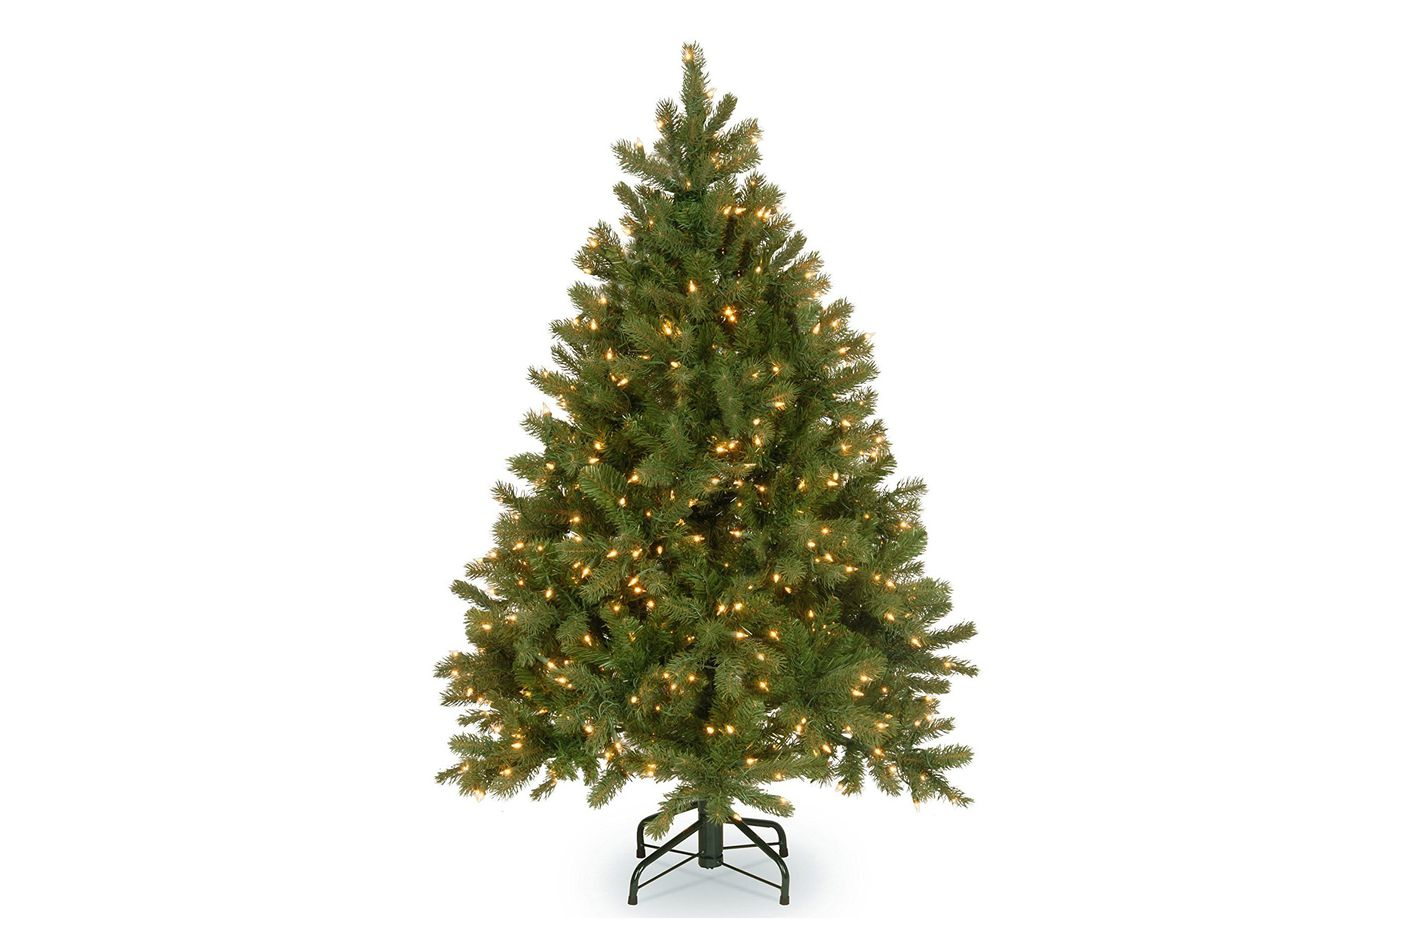 best pre lit 45 foot douglas fir christmas tree - Real Christmas Tree Prices